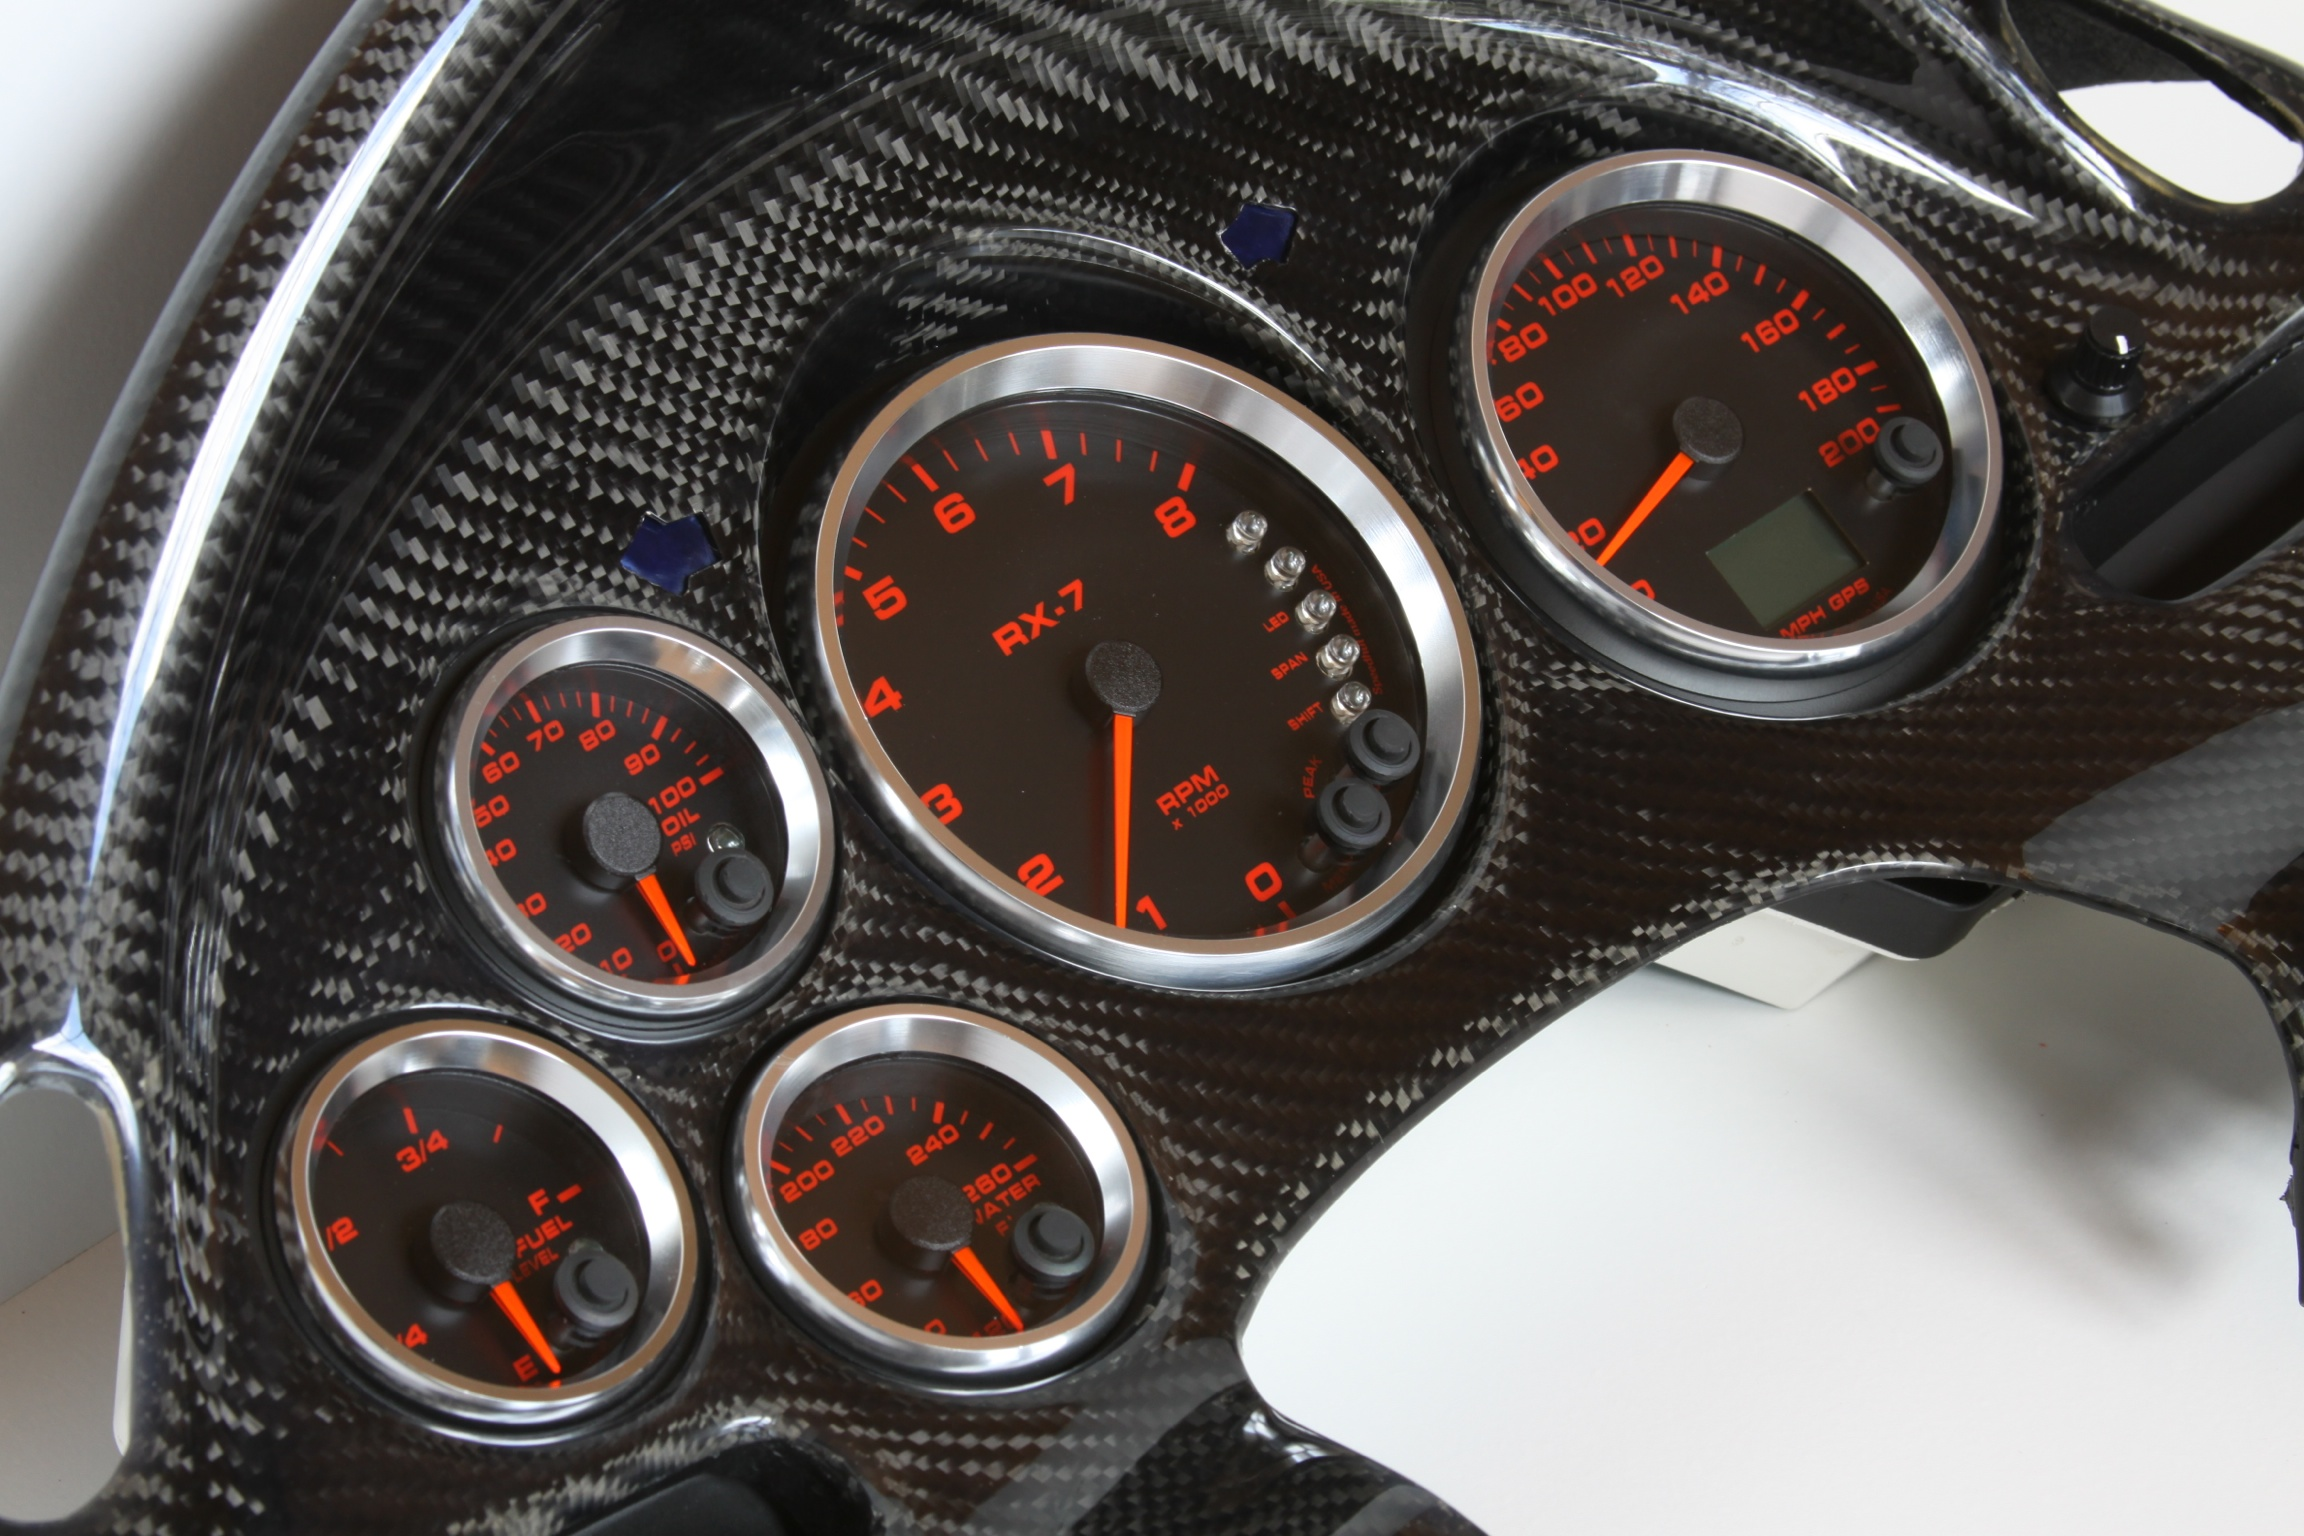 Where Can I Make Custome Gauge For Cars